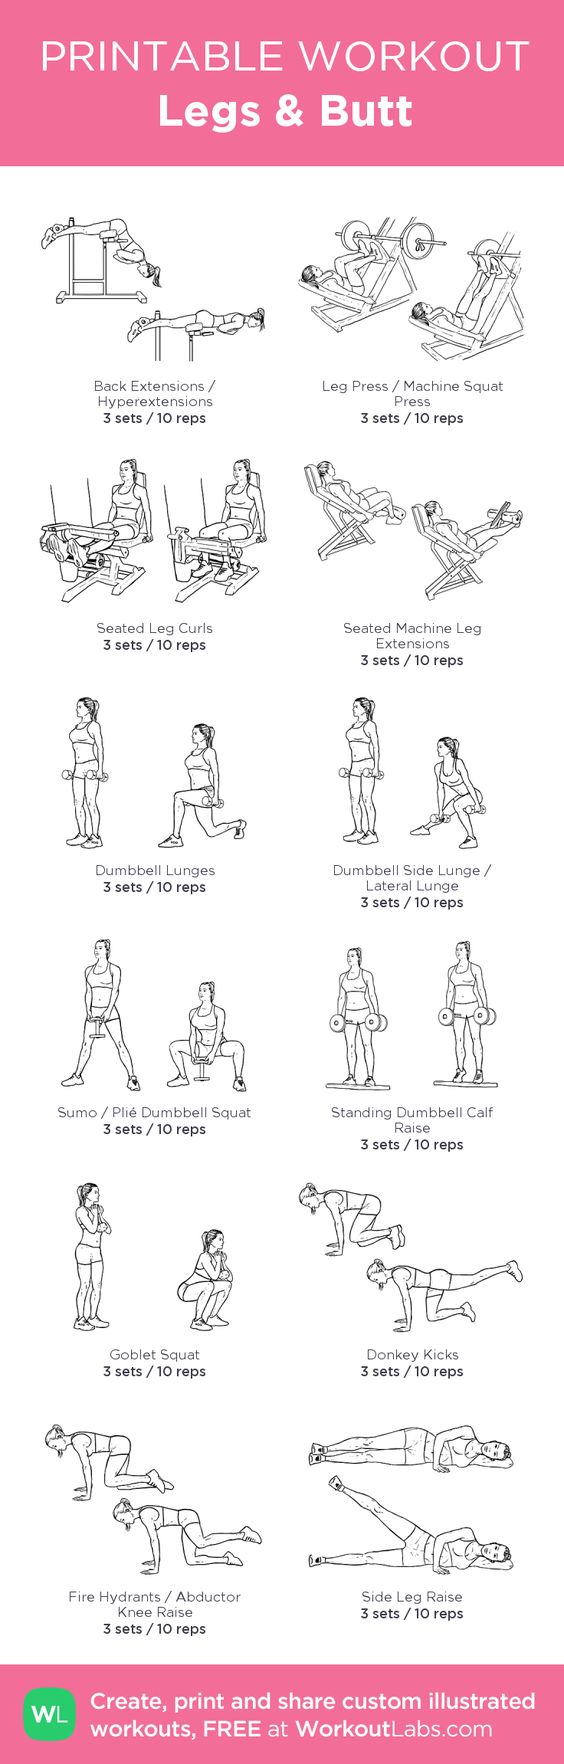 Legs & Butt – my custom workout created at WorkoutLabs.com • Click through to download as printable PDF! #customworkout: